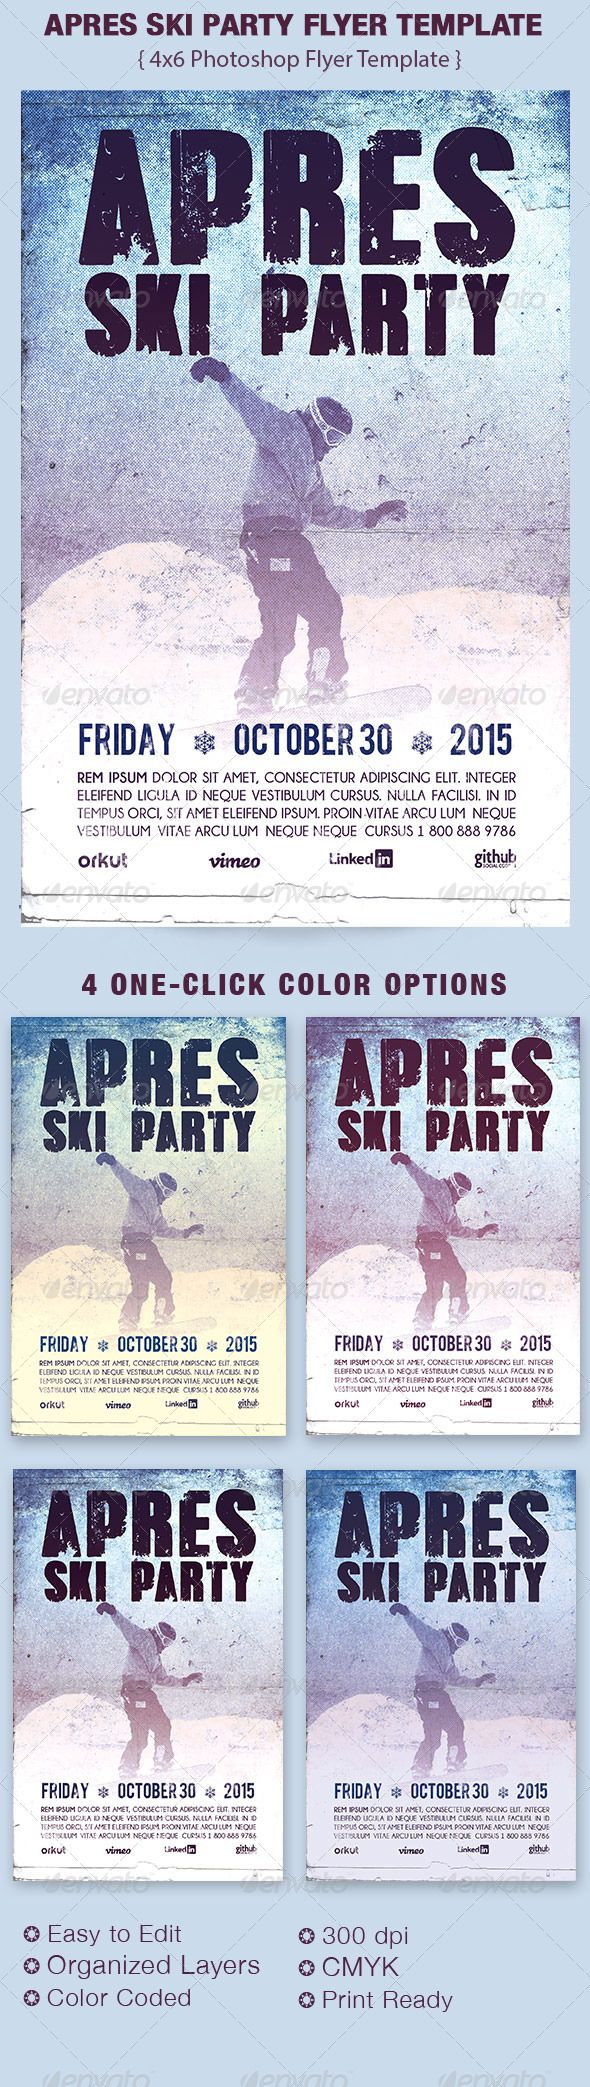 Pin By Casey Sloss On Apres Pinterest Skiing Party And Apres Ski